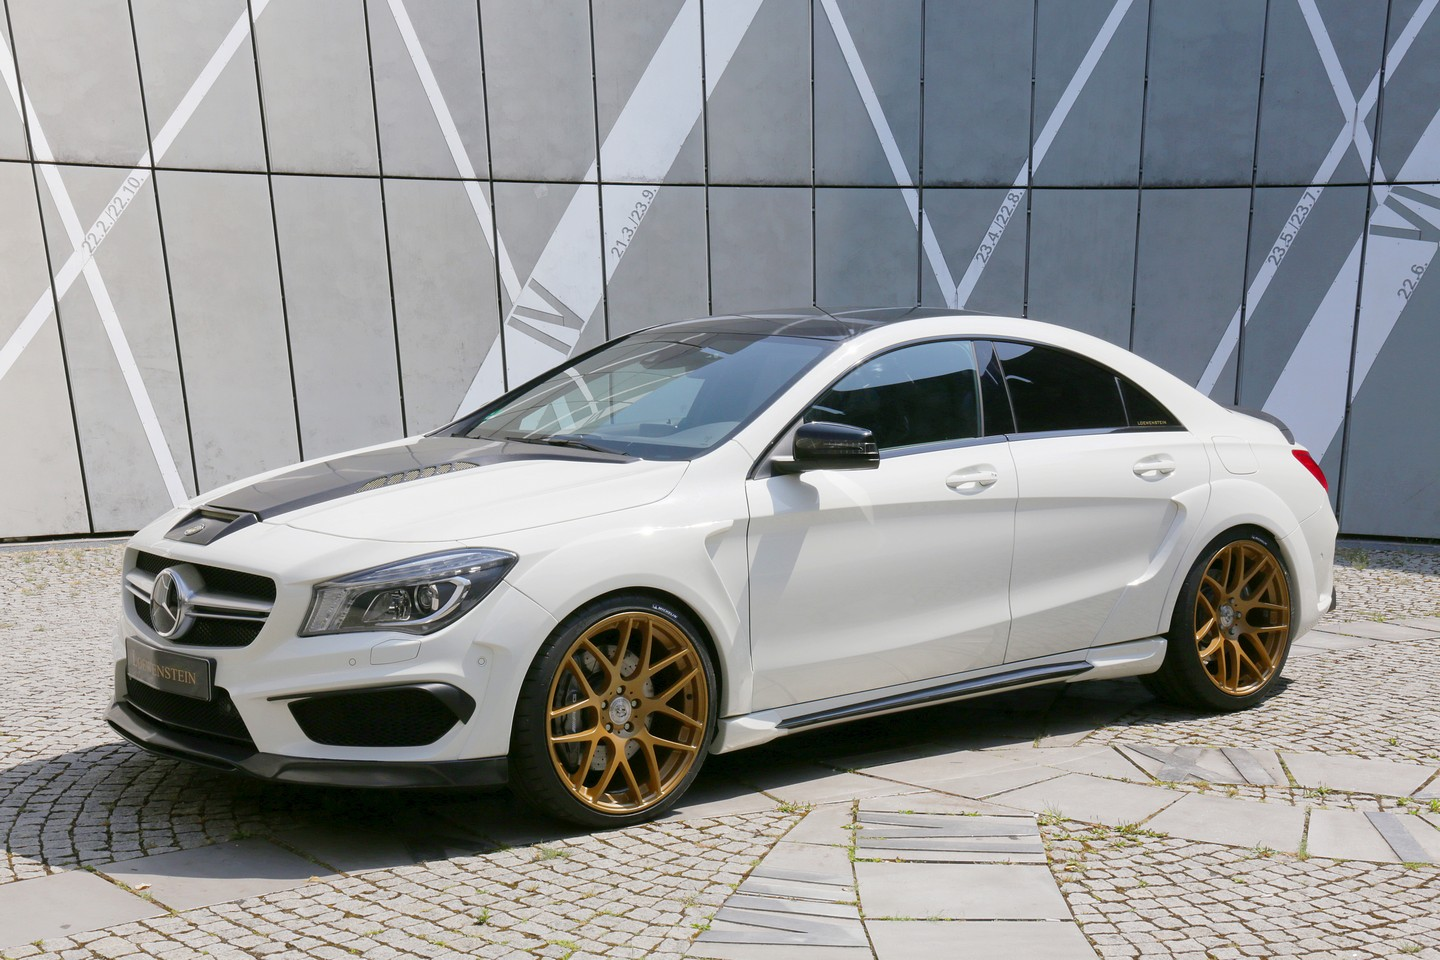 Perfect The Mercedes Benz CLA 45 AMG By Loewenstein   MercedesBlog